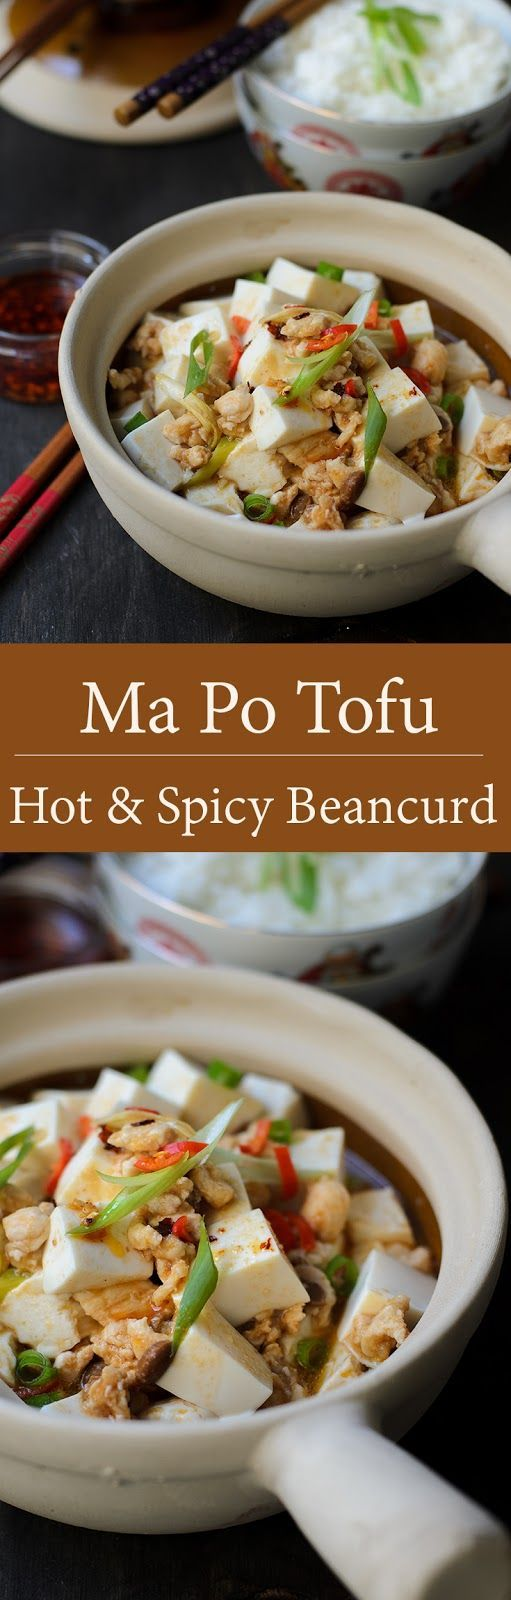 Easy Mapo tofu recipe.  Mapo tofu using ground chicken, spicy fermented beans and soft silken tofu. Easy Mapo tofu from stove to dinner table within 30 minutes.